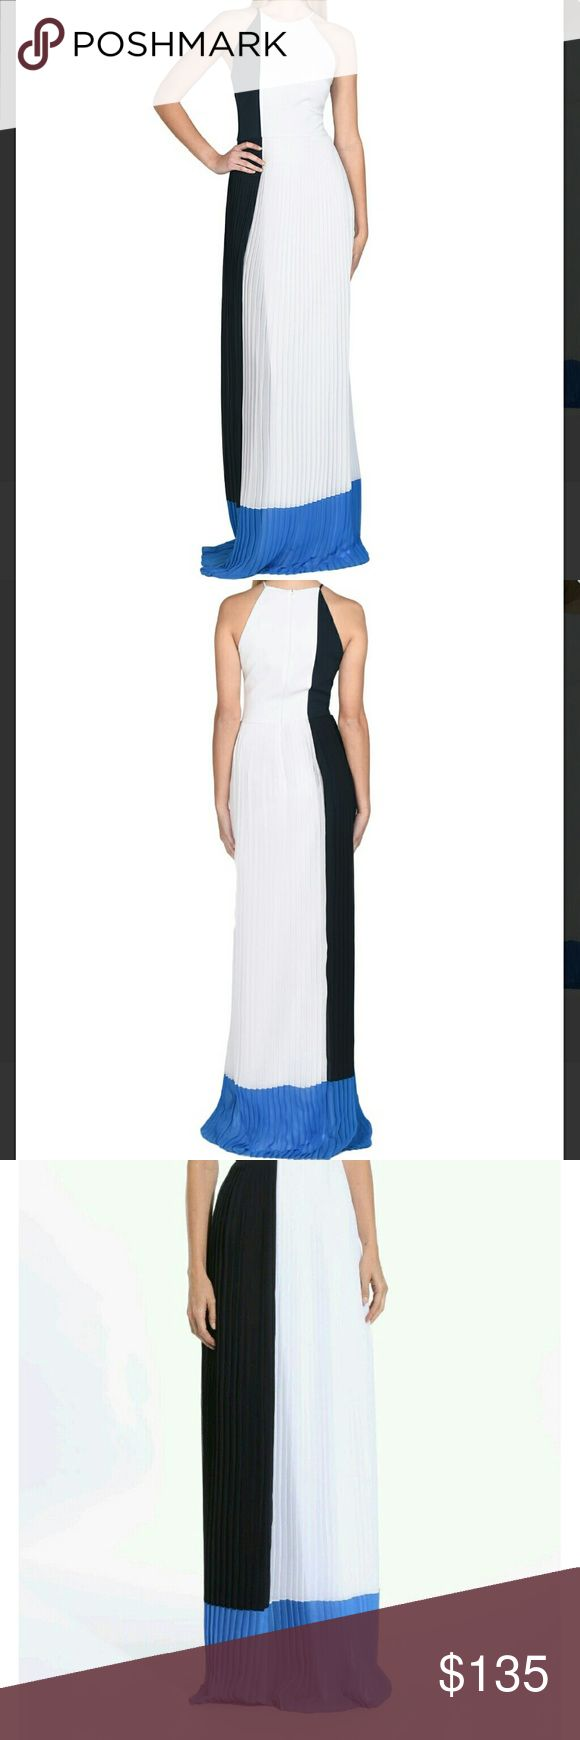 Badgley Mischka EG1861 Pleated Colorblock Evening Badgley Mischka EG1861 Pleated Colorblock Evening Gown   Look stylish and on-trend in this colorblock full-length dress with lightweight accordion pleats. Wear this chic style day or night; it's perfect for spring or summer soirees (or your upcoming holiday in the sun).  Fully lined 98% polyester, 2% spandex Dry clean only  SIZE:0  *ALL SALES ARE FINAL* Badgley Mischka Dresses Maxi